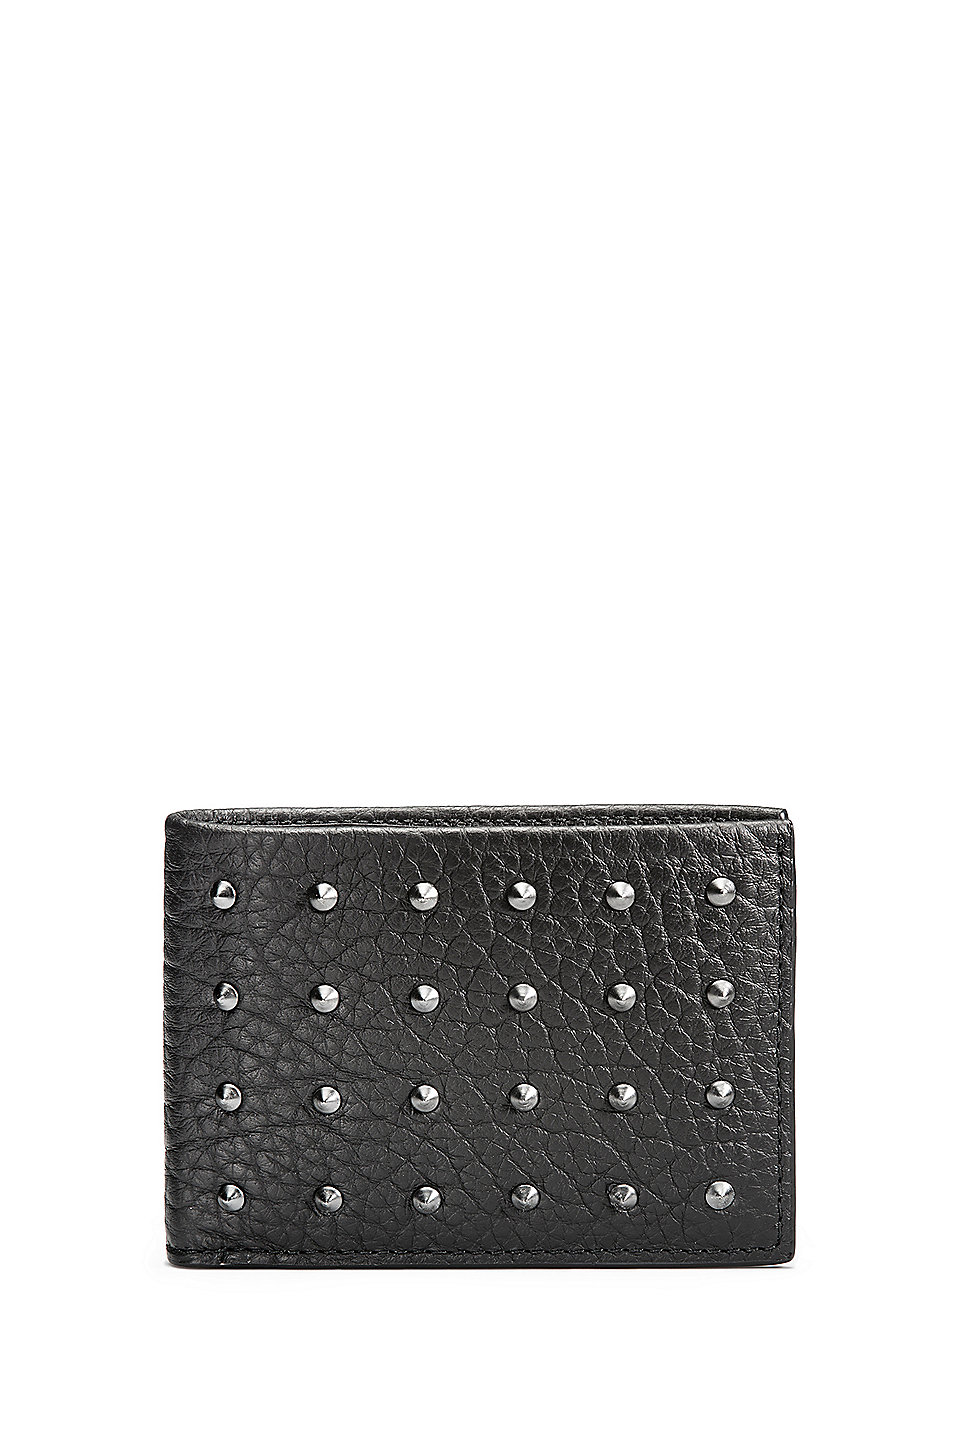 HUGO - Studded Leather Wallet | Victorian S S 6CC